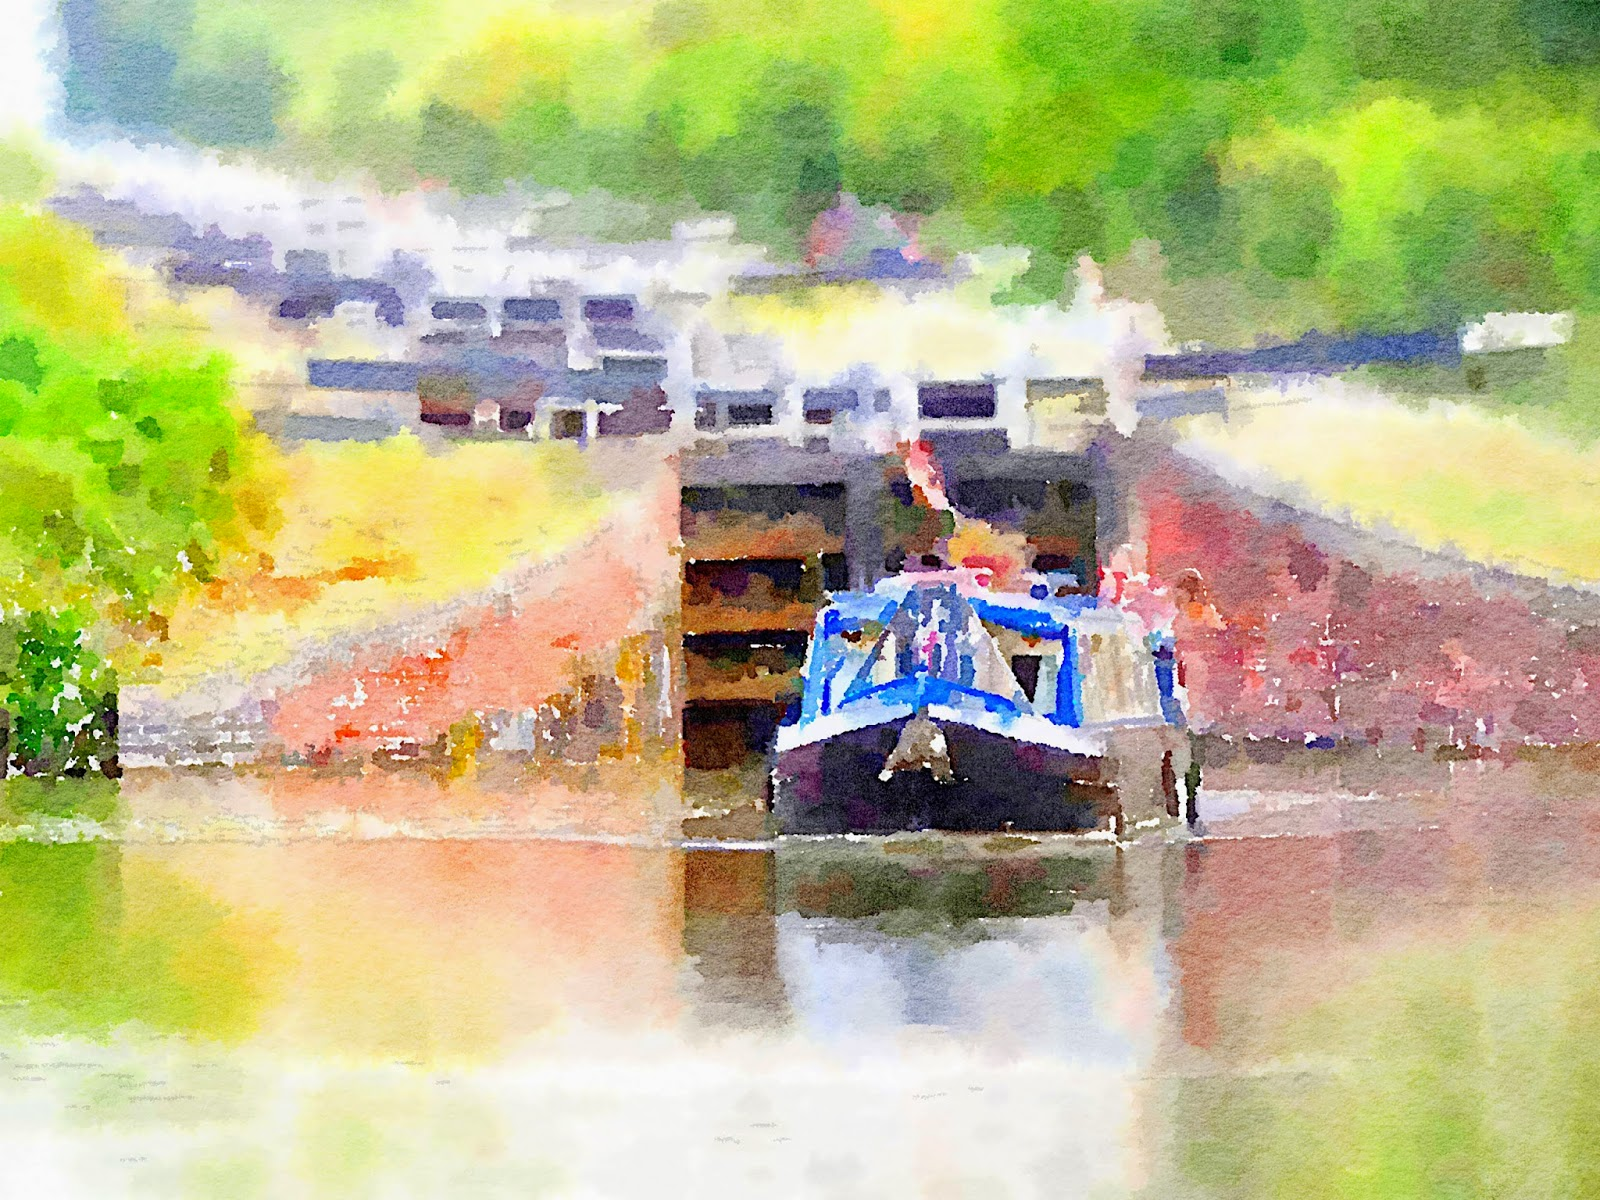 Narrowboat canal boater